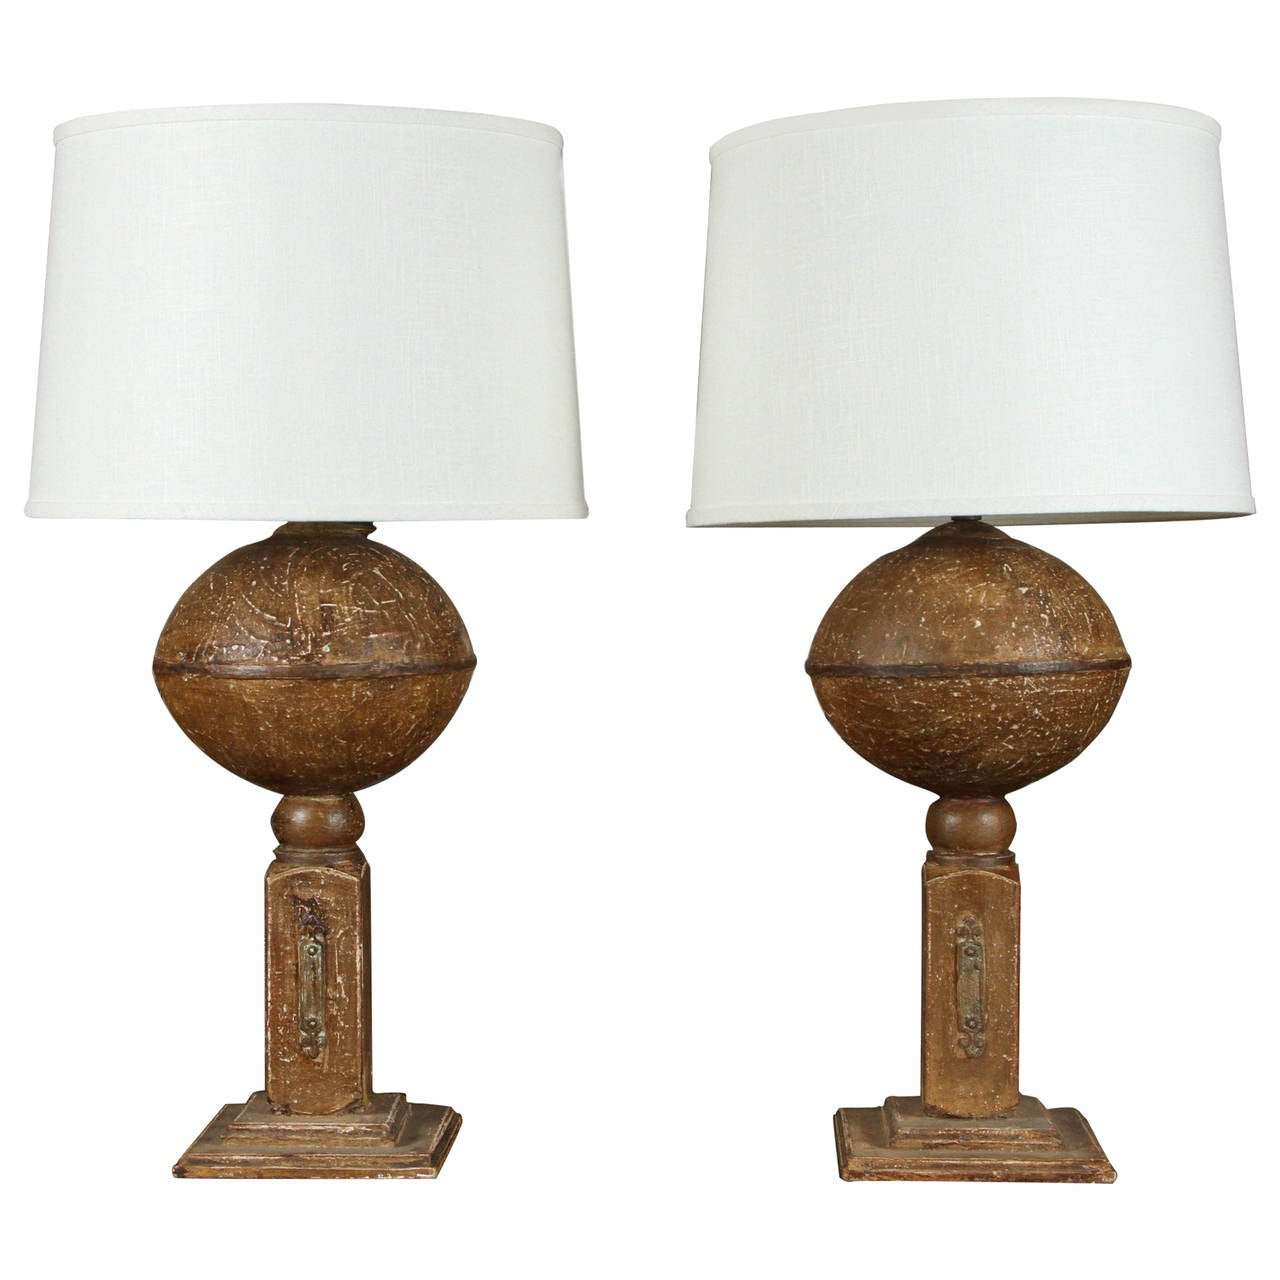 Paper mache lamps at 1stdibs for How to make paper mache lamps